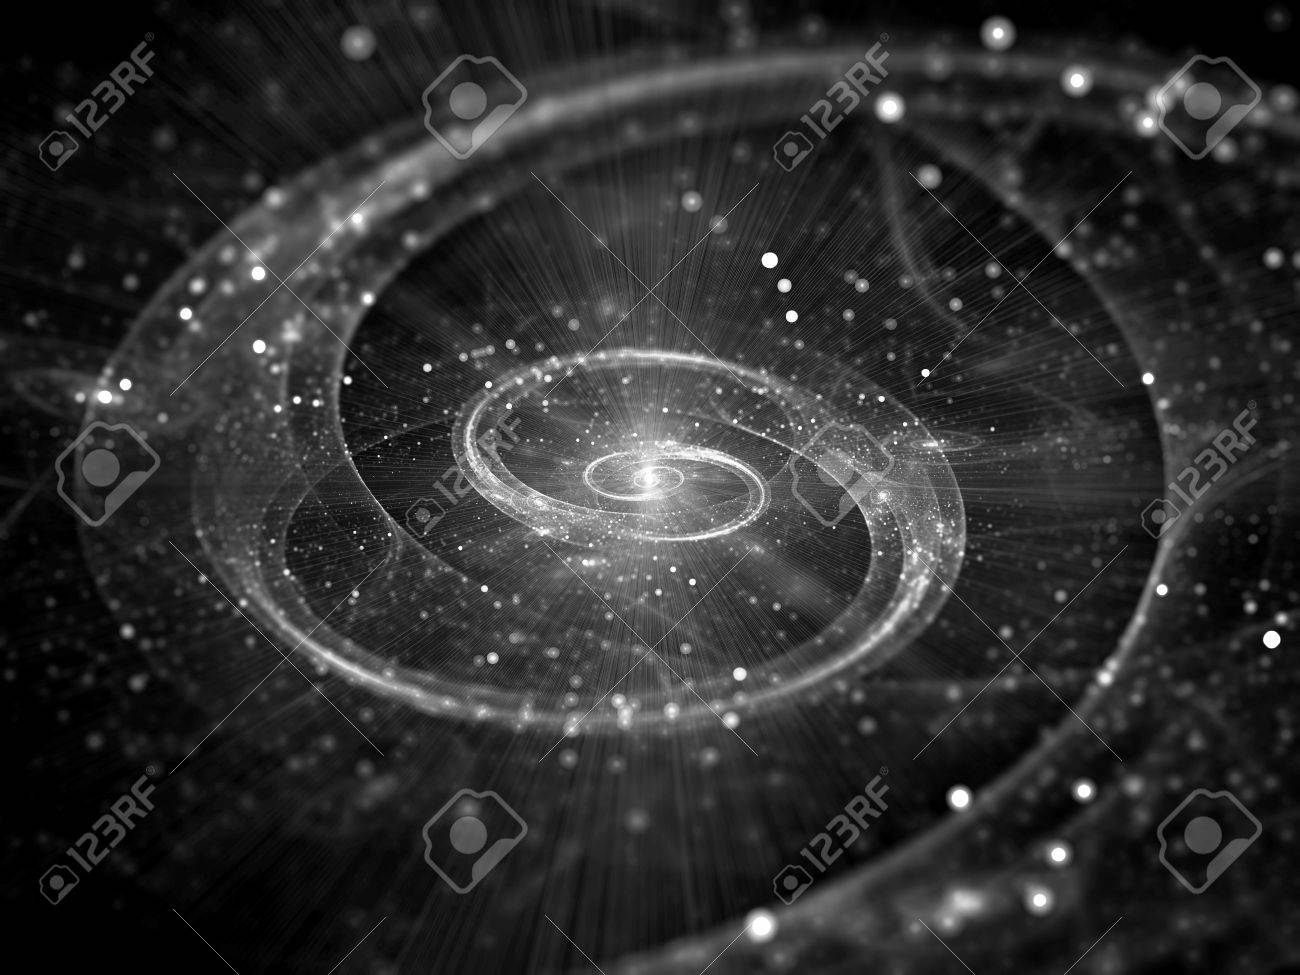 Spiral Galaxy In Deep Space Intensity Map Black And White, Computer on